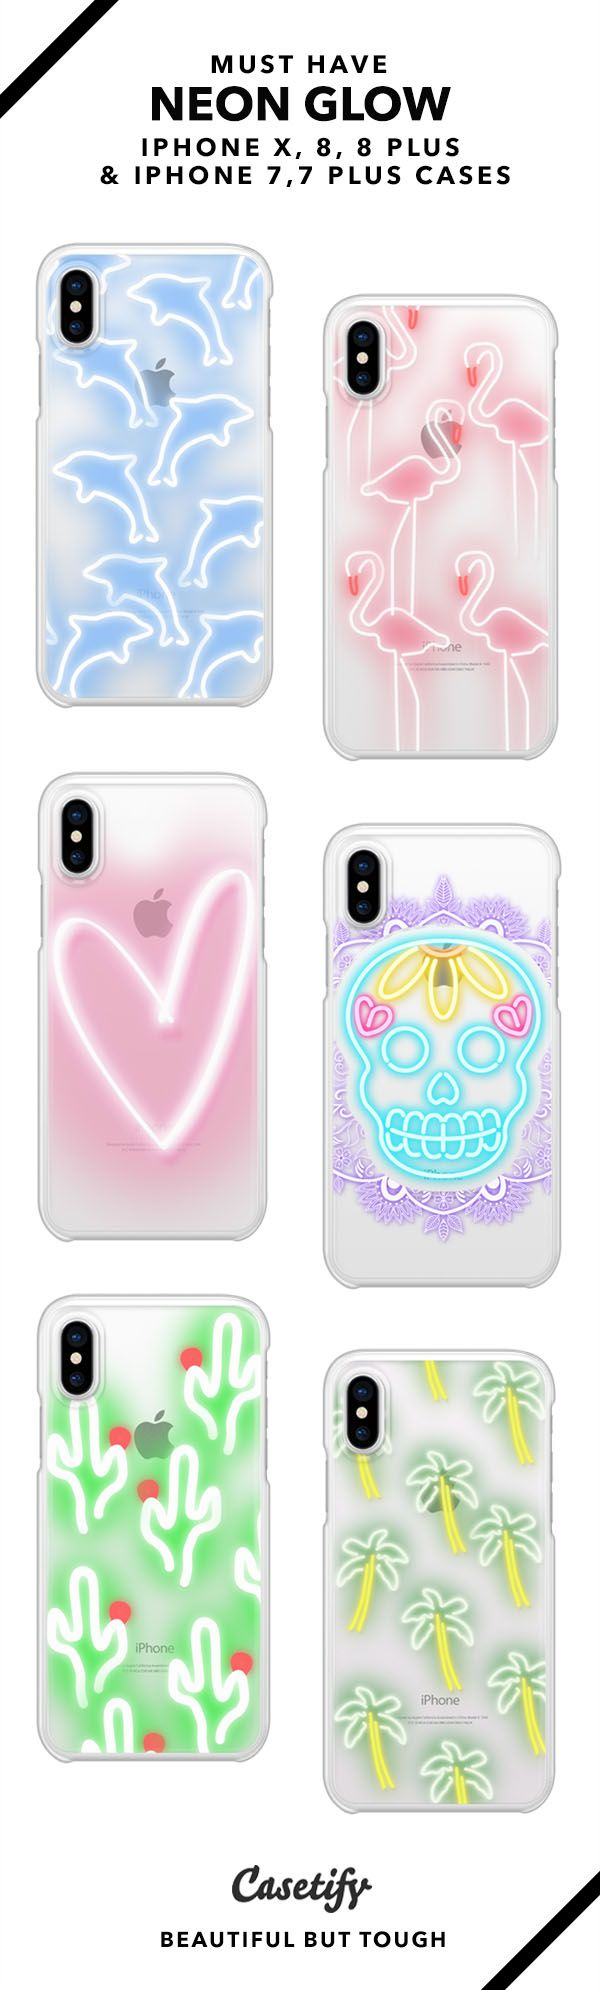 Must Have Neon Glow iPhone X, iPhone 8, iPhone 8 Plus, iPhone 7 and iPhone 7 Plus case. - Shop them here ☝️☝️☝️ BEAUTIFUL BUT TOUGH ✨ - neon color, neon, skull, flamingo, glowing